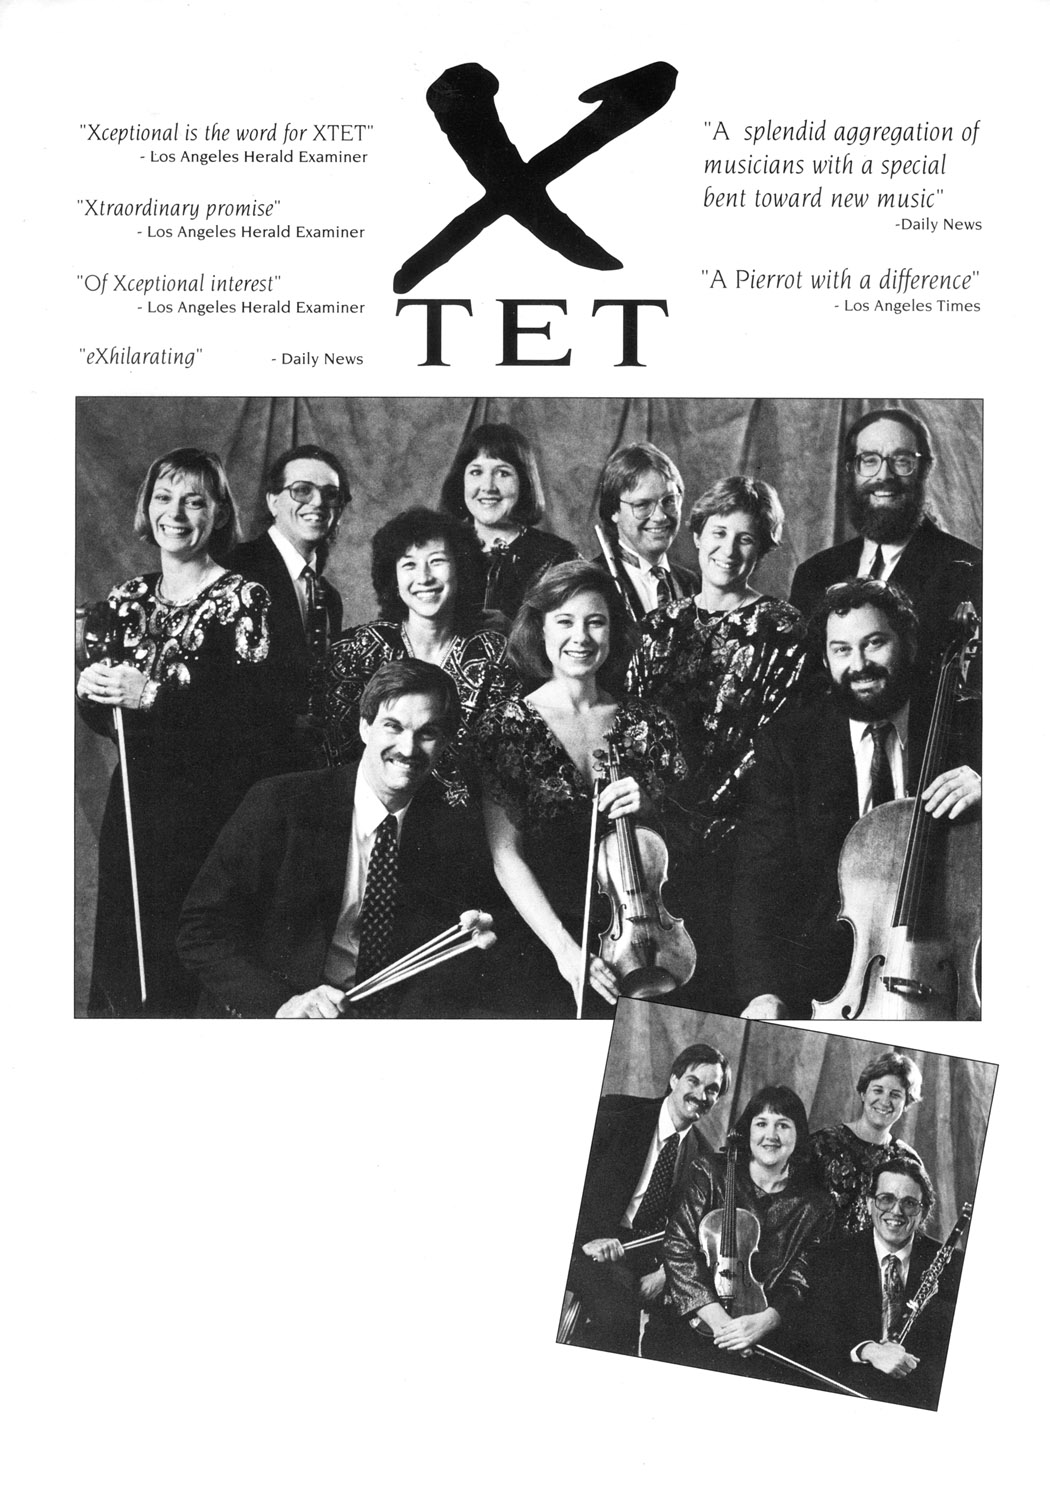 Publicity flyer for chamber ensemble Xtet with press quotes, early 1990s - L-R Jennifer Munday, David Ocker, David Johnson, Daisietta Kim, Kazi Pitelka, Elizabeth Baker, Gary Woodward, JoAnn Turovsky, Roger Lebow, John Steinmetz